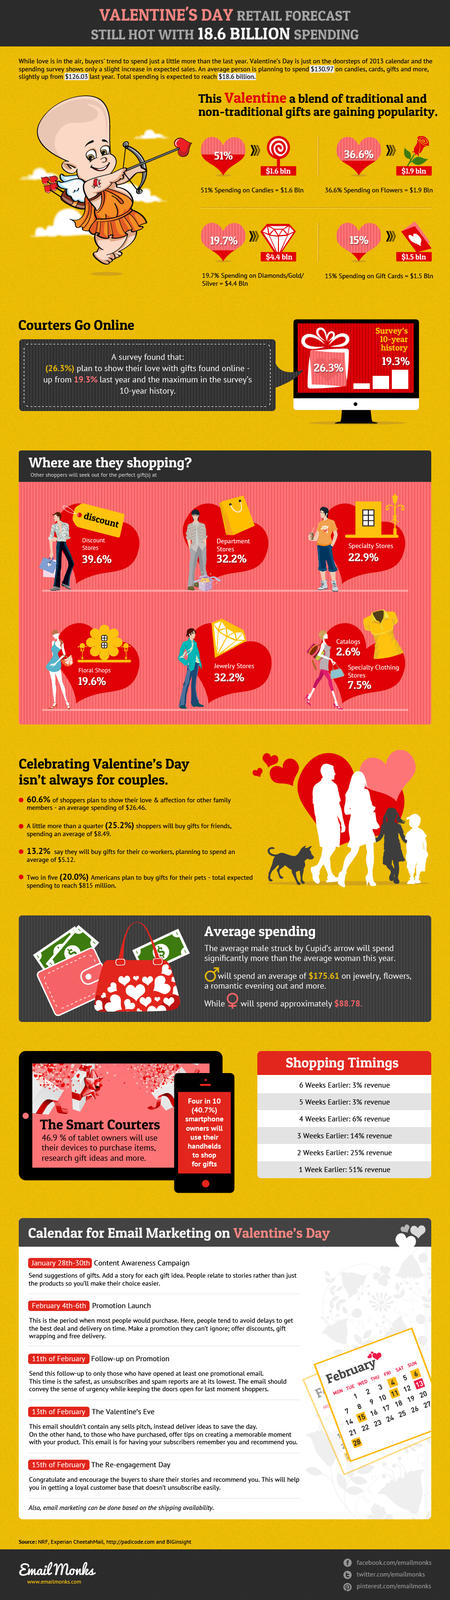 Email Monks Valentine's Day Retail Sales Forecast 2013